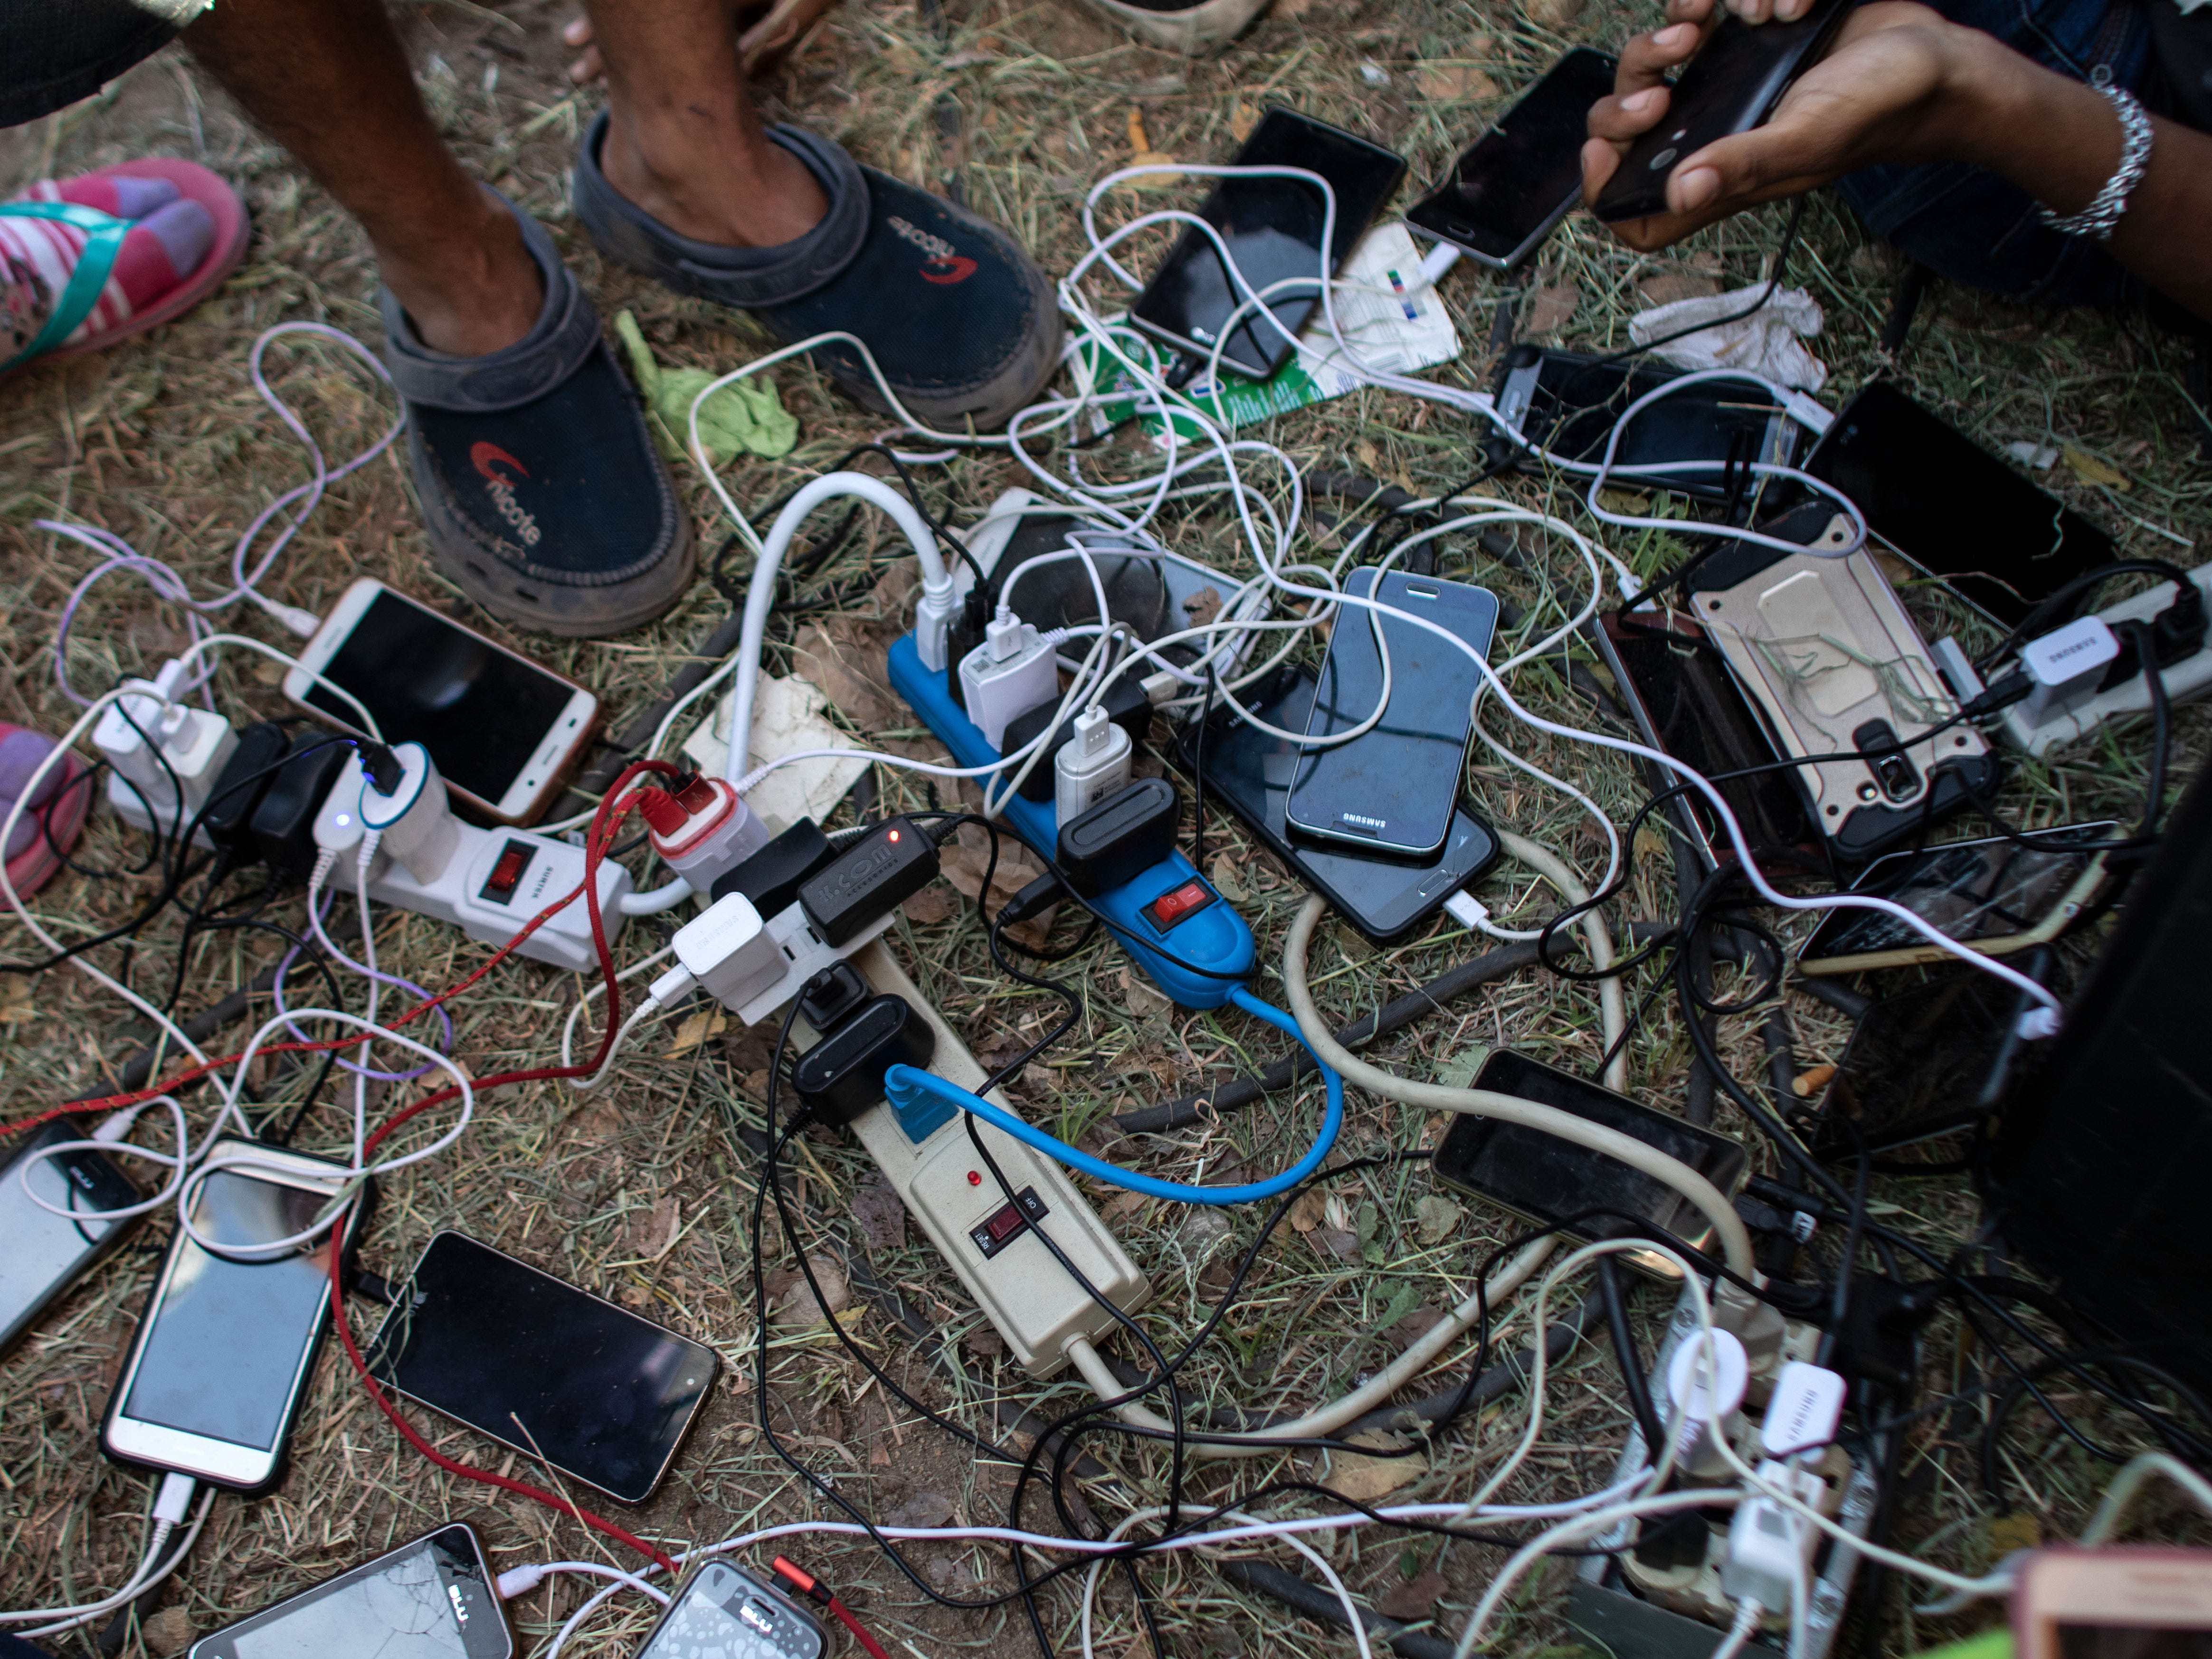 Honduran migrants taking part in a caravan heading to the U.S. charge their mobile phones at a temporary shelter in Juchitan de Zaragoza, Oaxaca state, Mexico on Oct. 30, 2018.